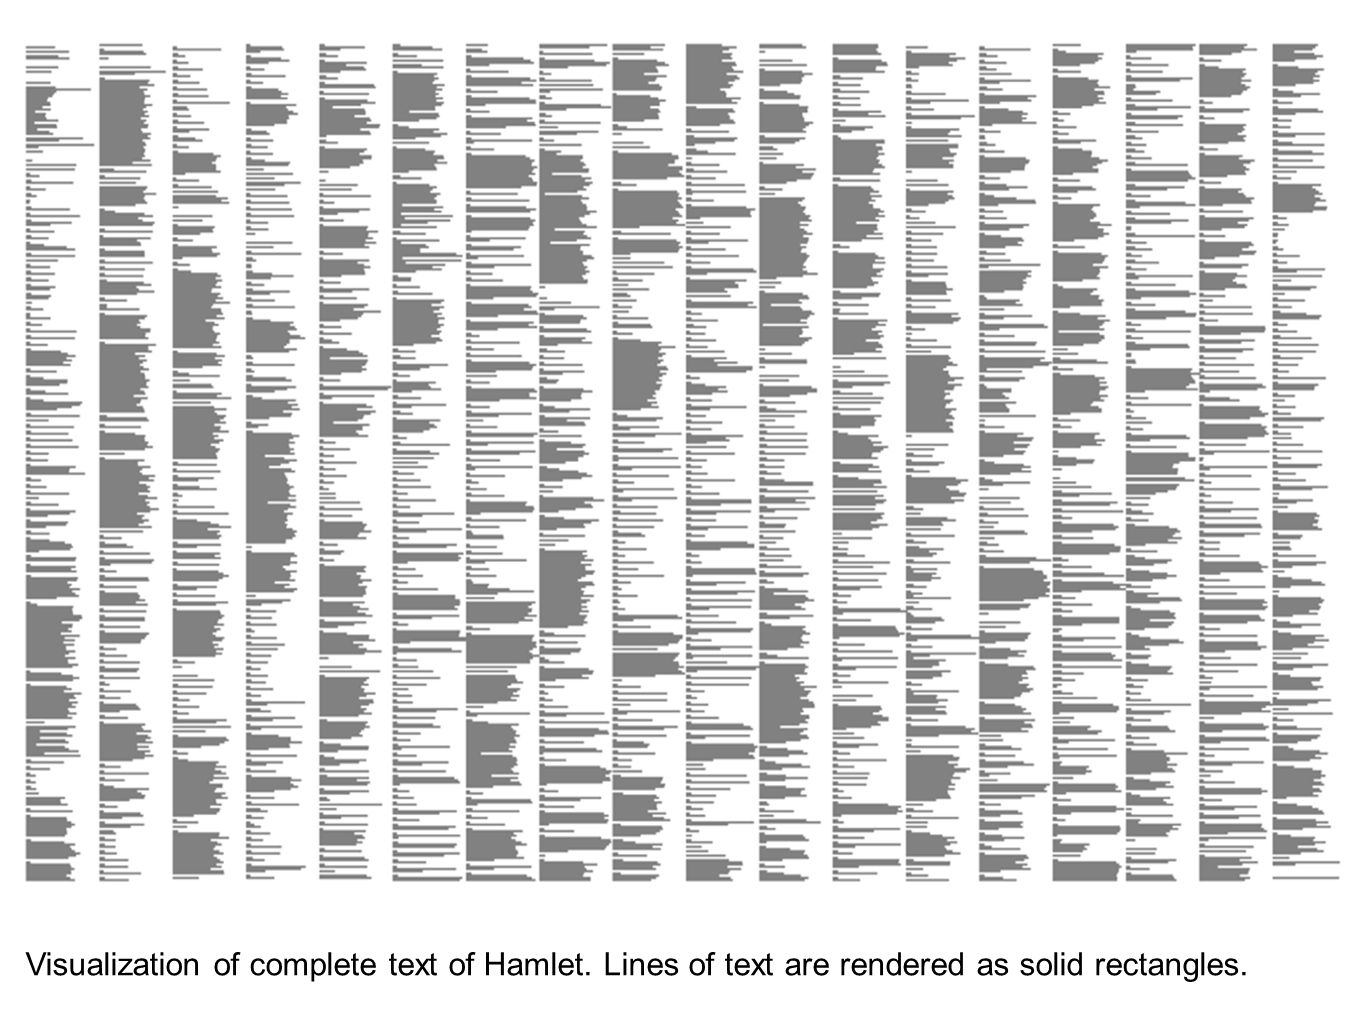 Visualization of complete text of Hamlet. Lines of text are rendered as solid rectangles.